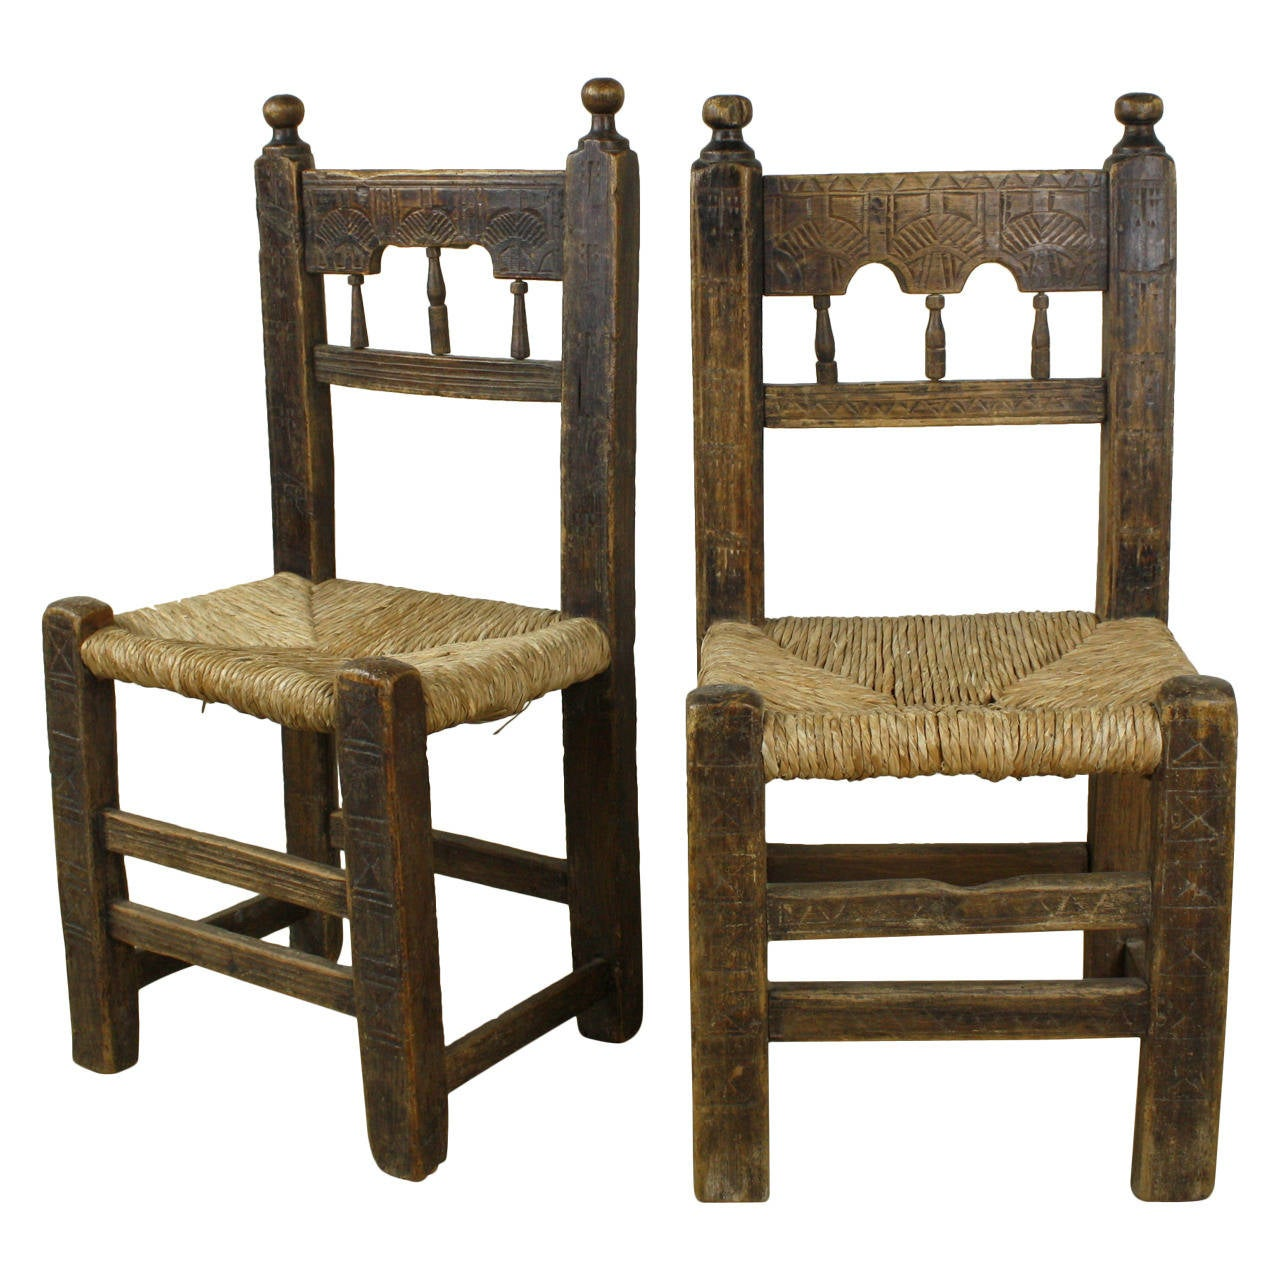 Antique 17th Century Spanish Chairs at 1stdibs - 17th Century Spanish Chairs At 1stdibs